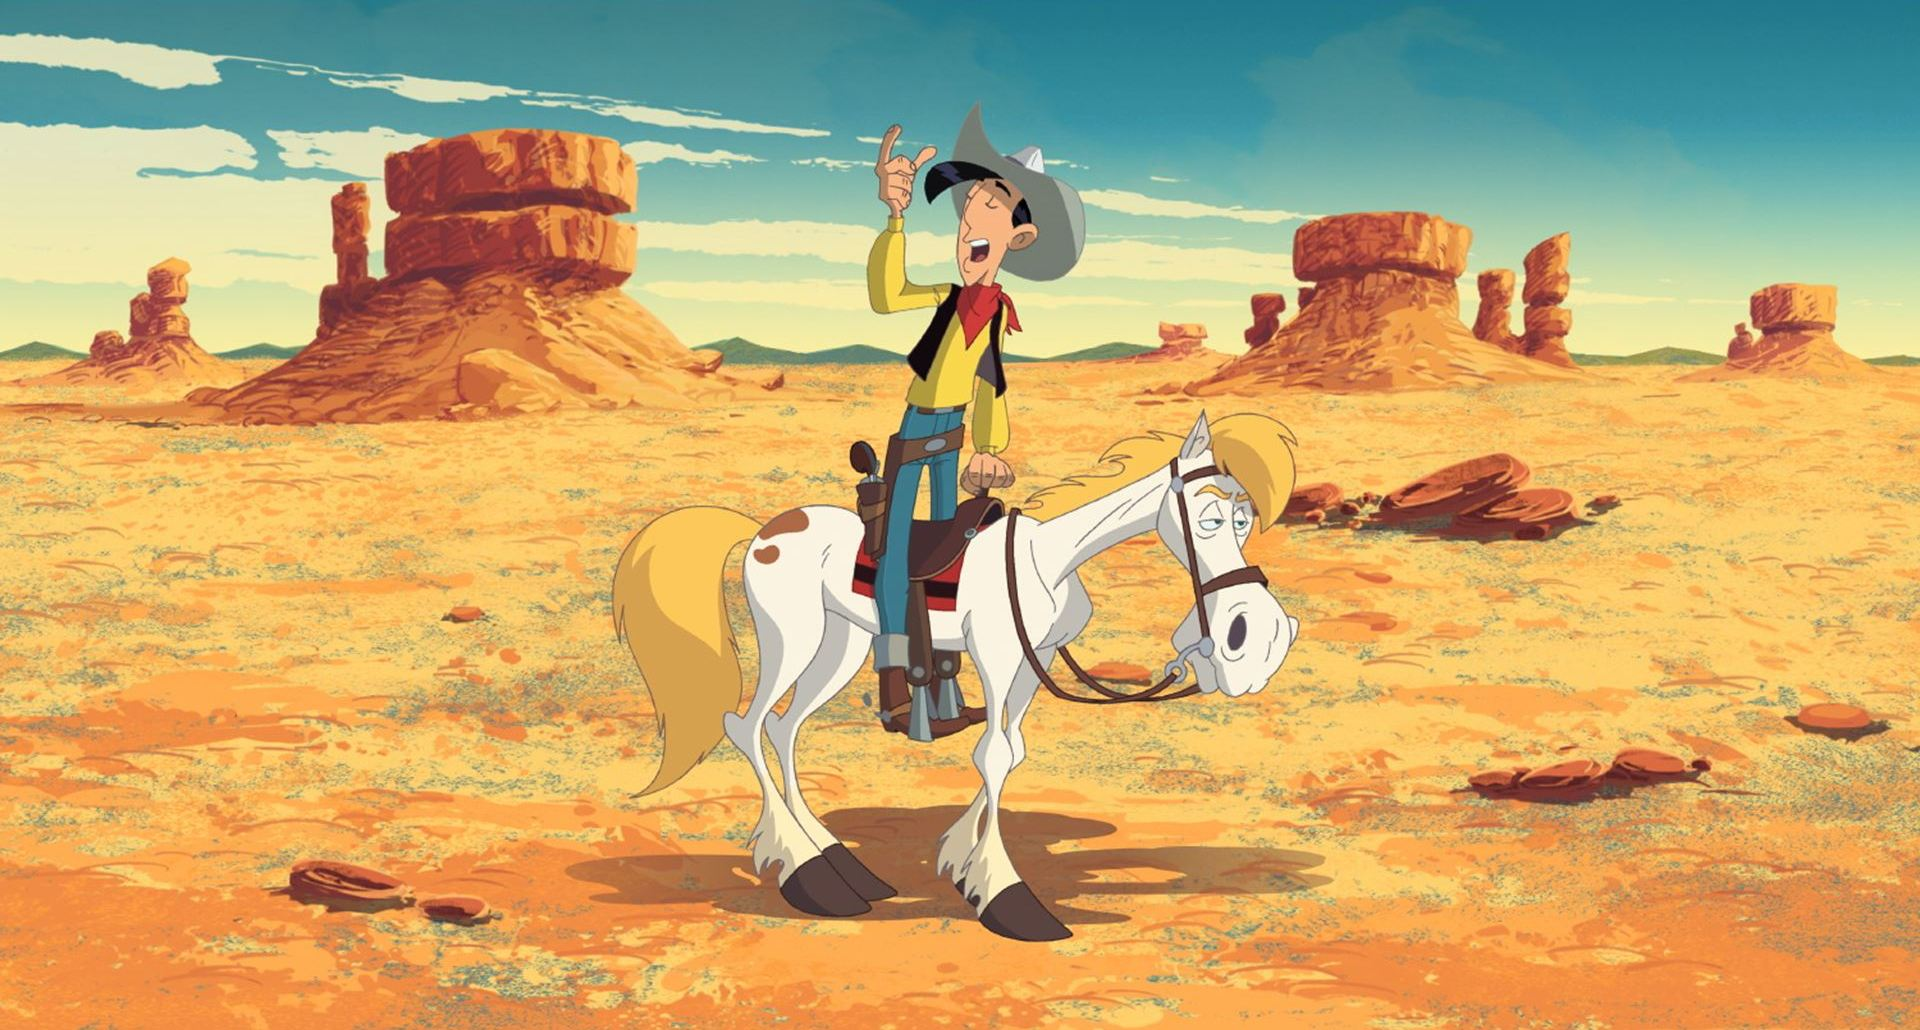 Go West A Lucky Luke Adventure Tous a l' Ouest Une aventure de Lucky Luke (9)